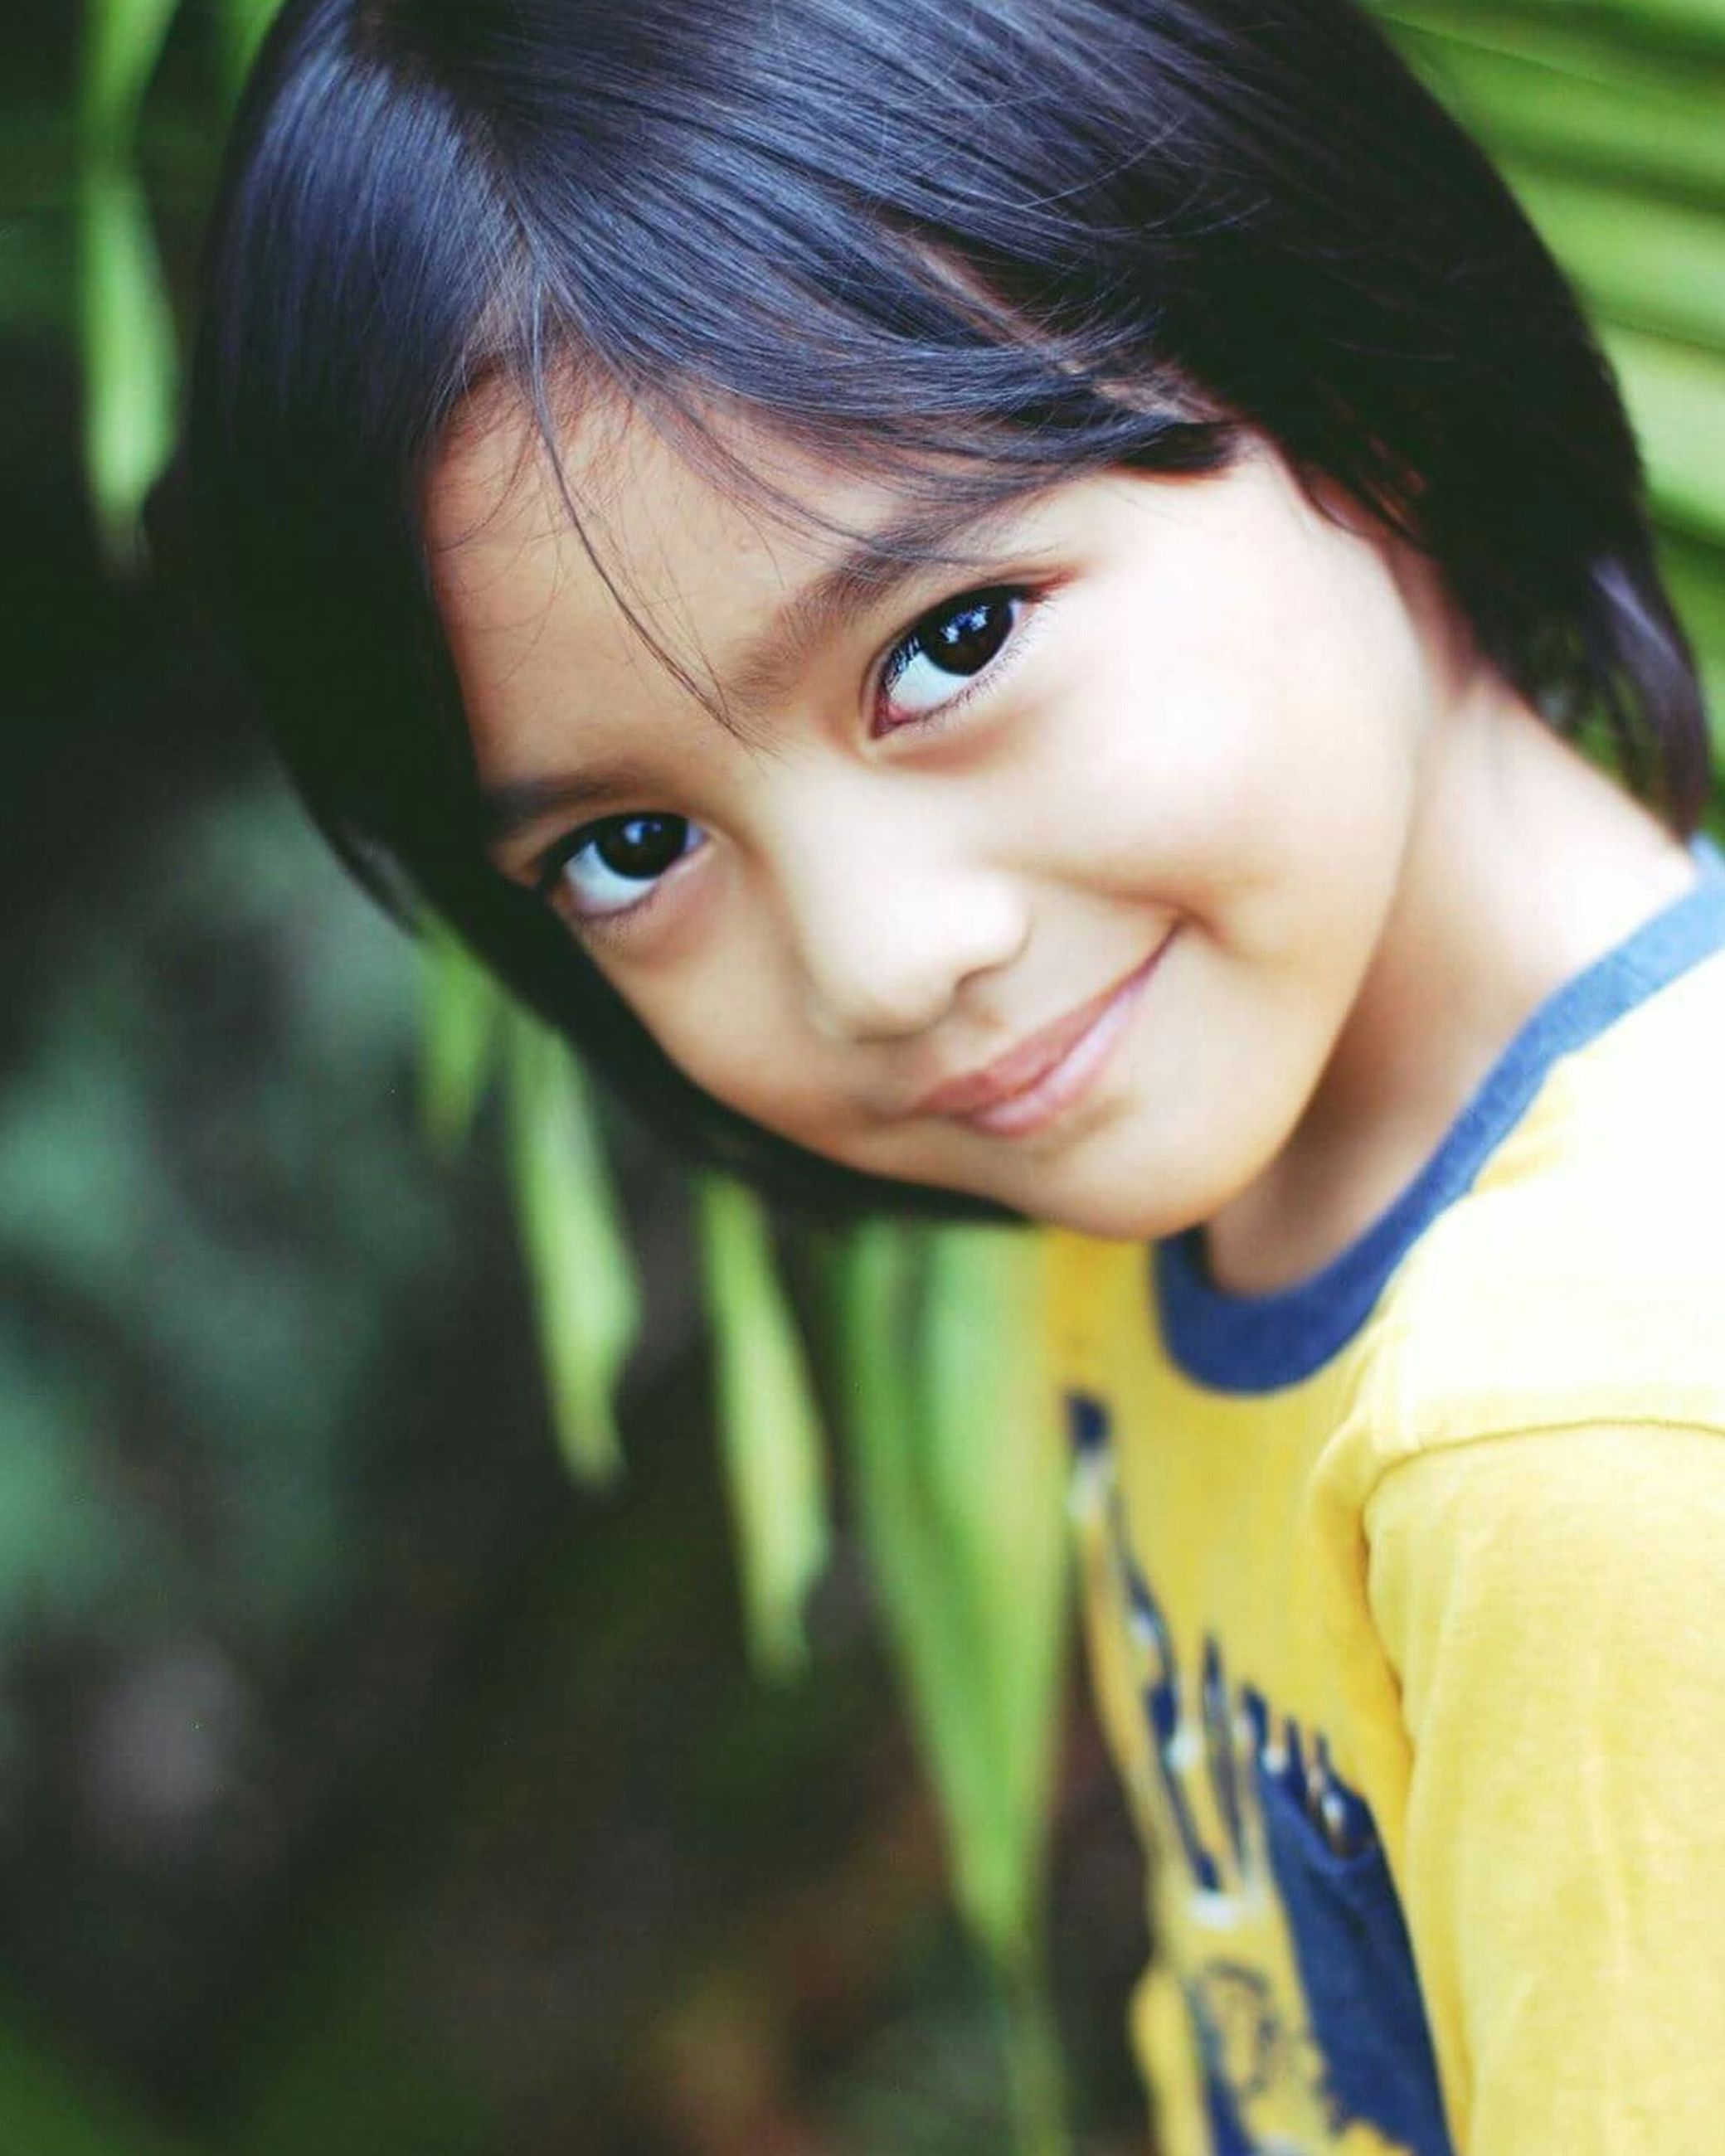 portrait, cute, looking at camera, girls, real people, childhood, one person, child, beauty, close-up, outdoors, human face, lifestyles, smiling, nature, human eye, day, human body part, people, eye color